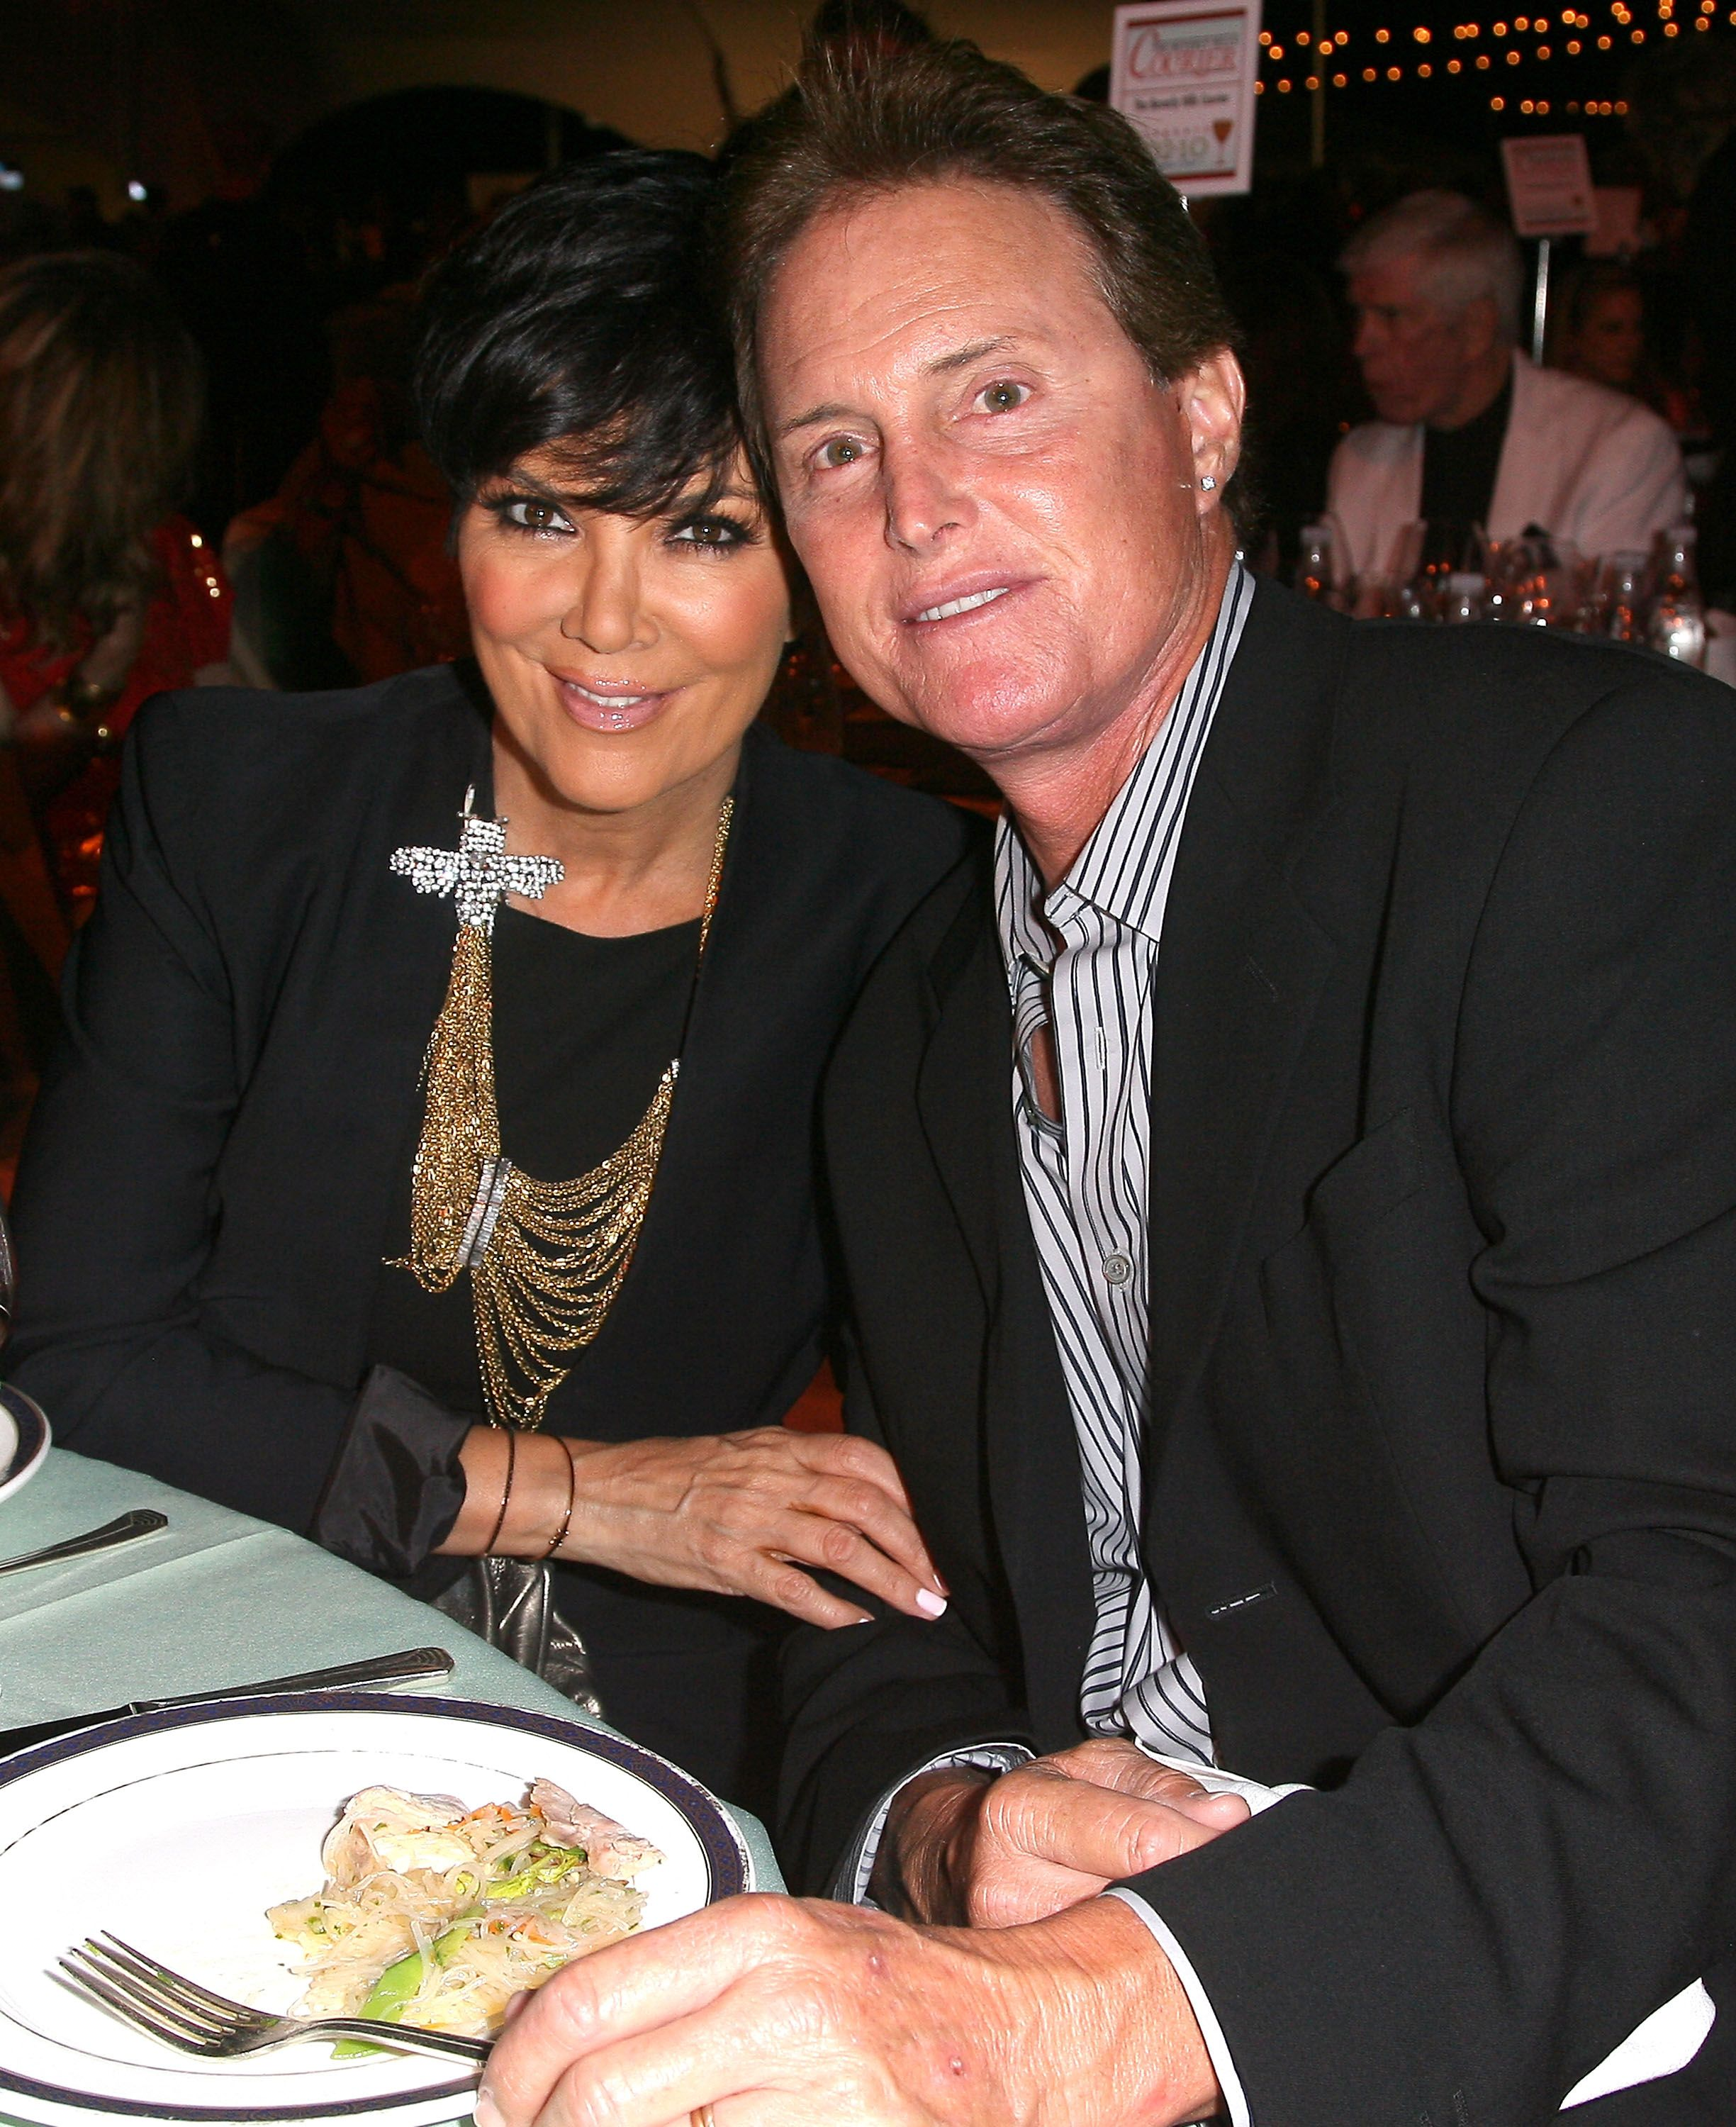 Kris Jenner and Bruce Jenner at the Taste Of Beverly Hills Wine & Food Festival Opening Night on September 2, 2010 in Beverly Hills, California. | Source: Getty Images